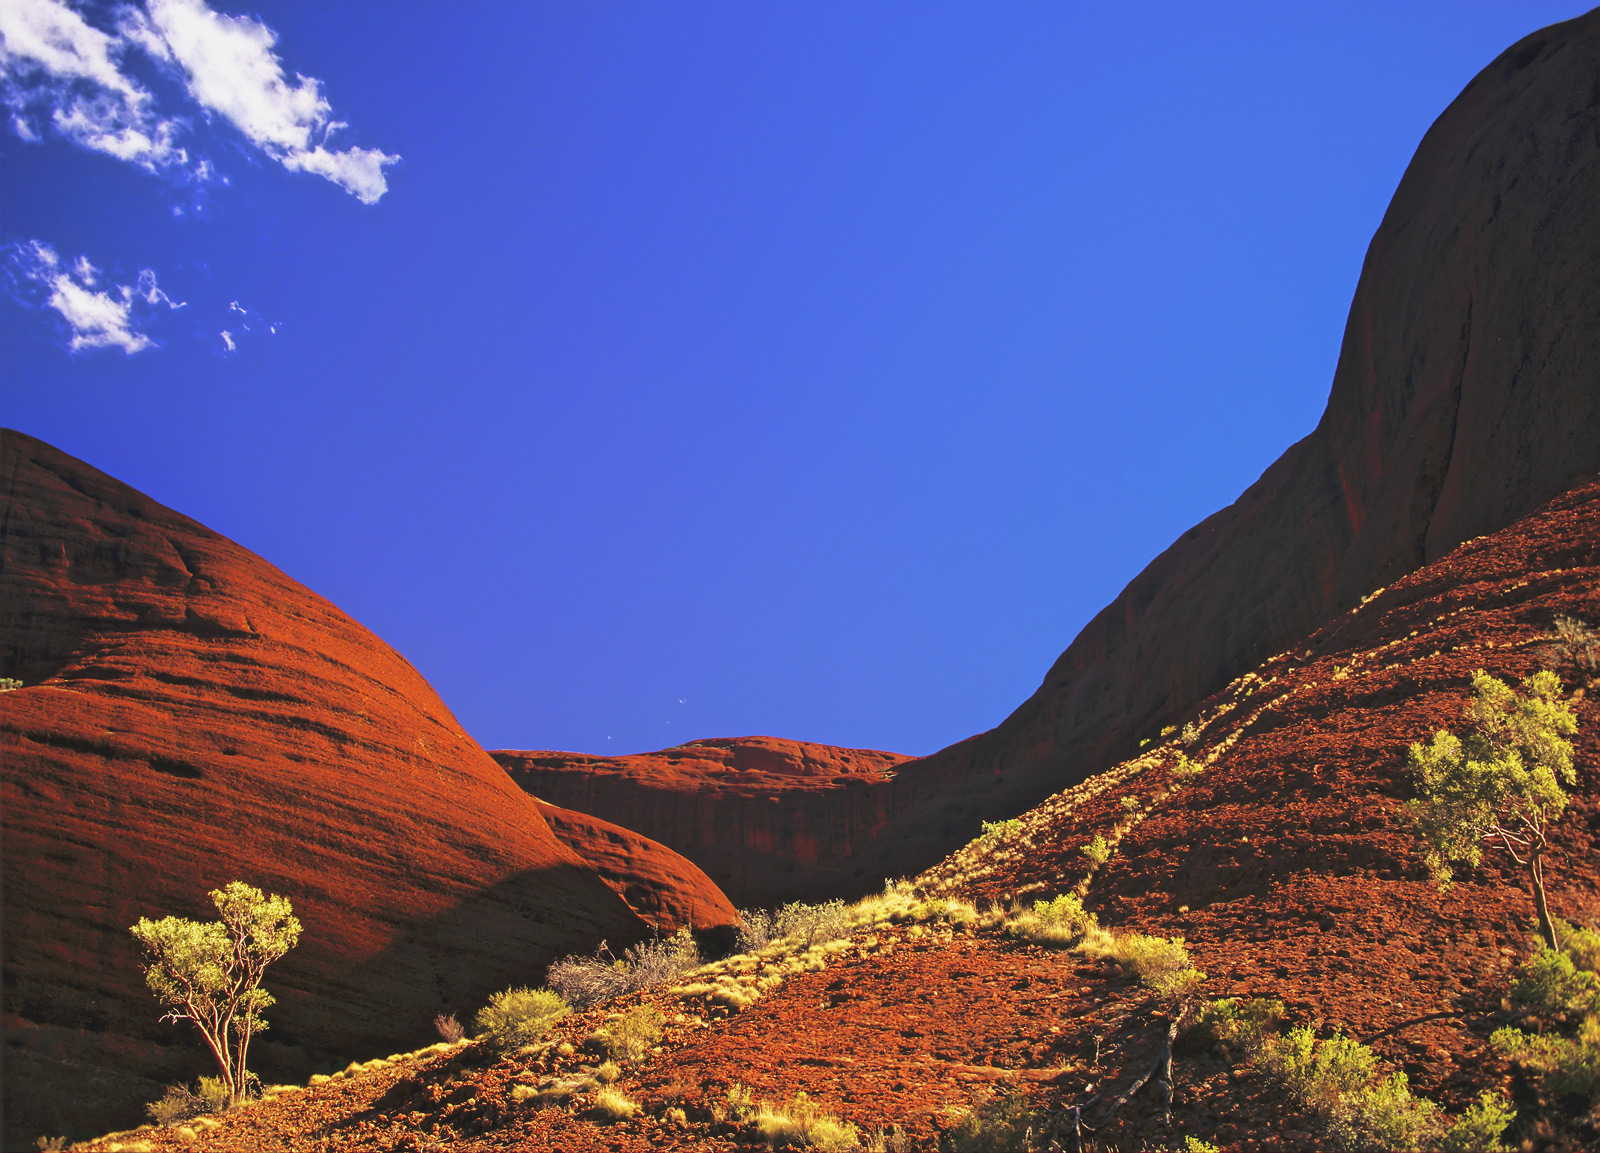 One of the great privileges of visiting Australia for me was going to see The Olgas and The Valley Of the Winds, although this...